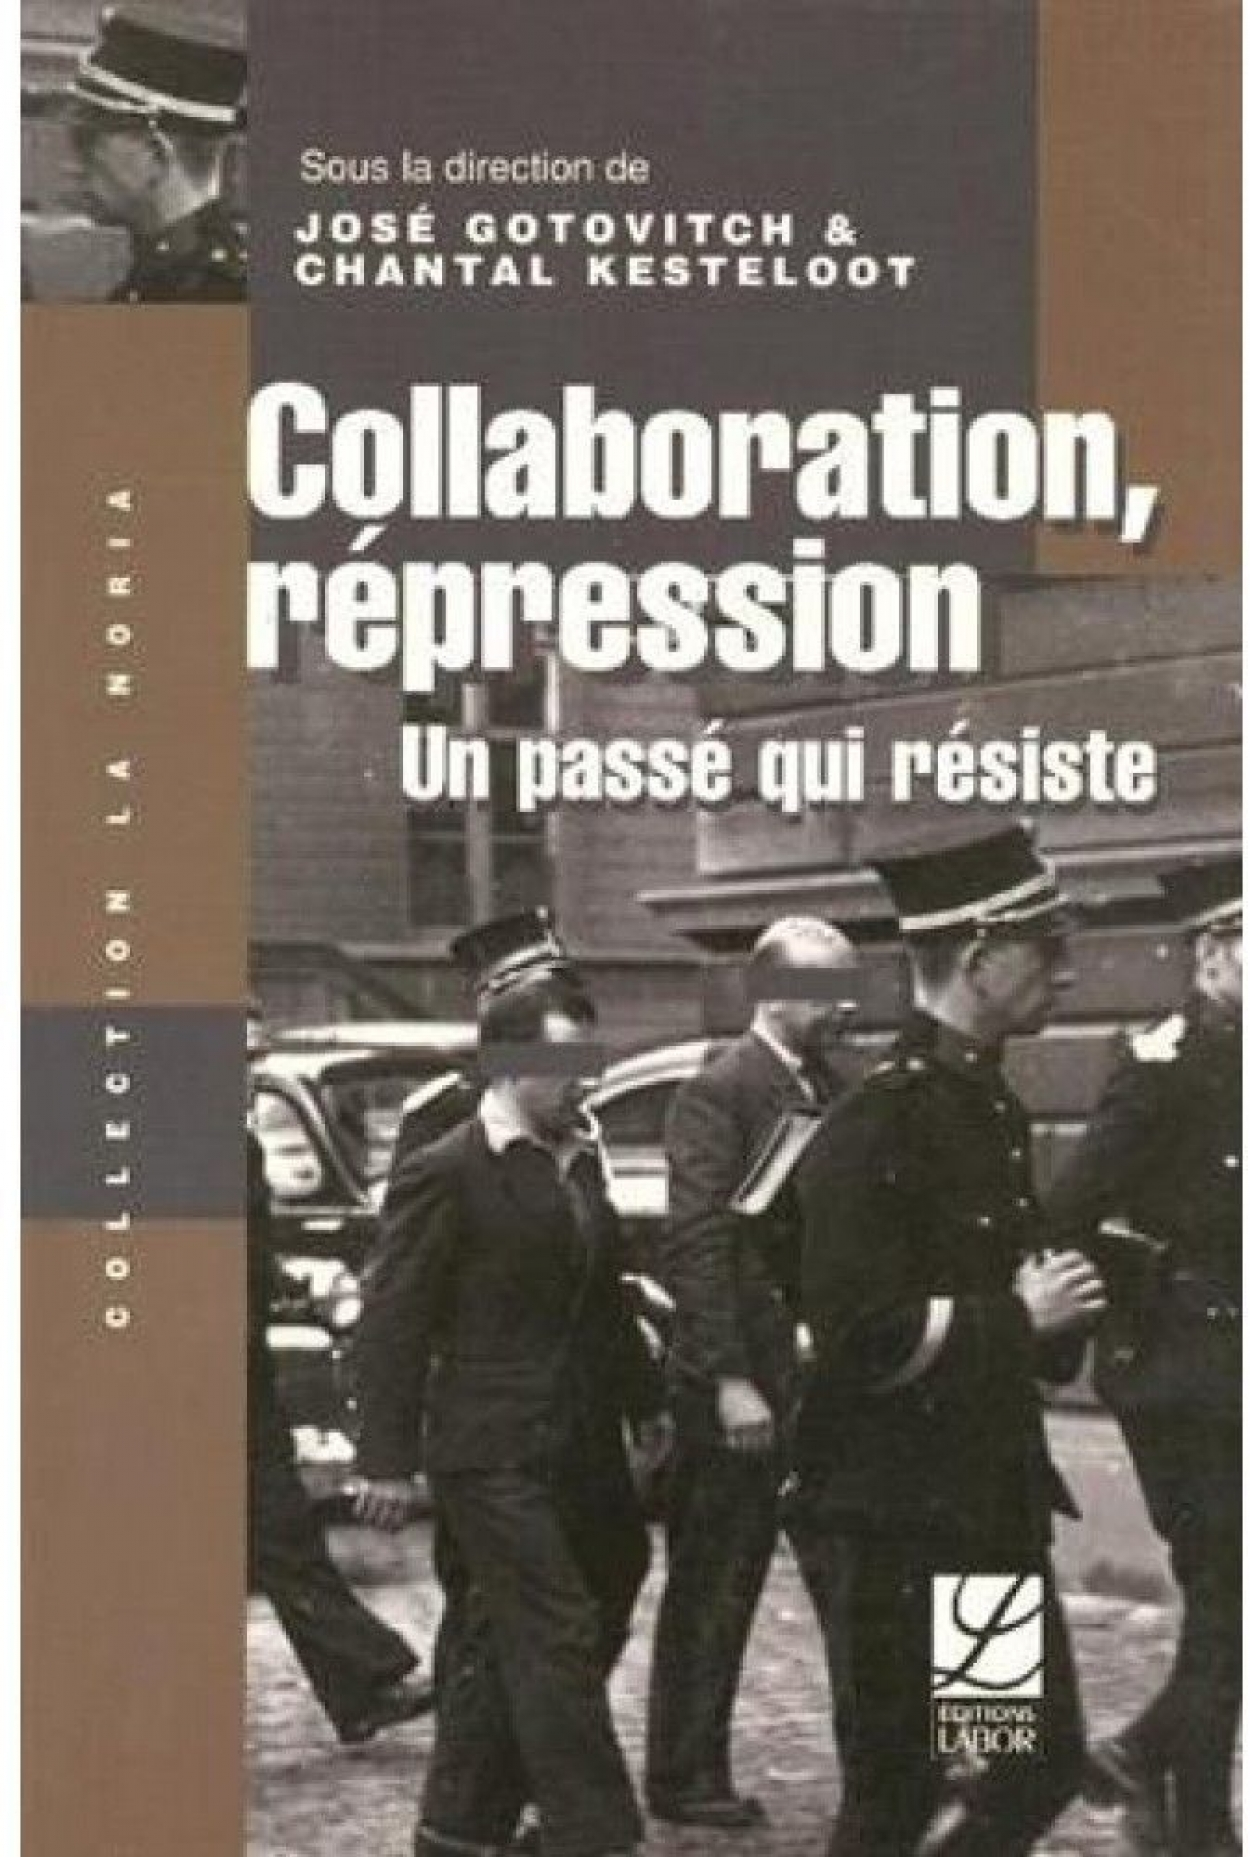 occupation-repression-un-passe-qui-resiste-9782804016630_0.jpg